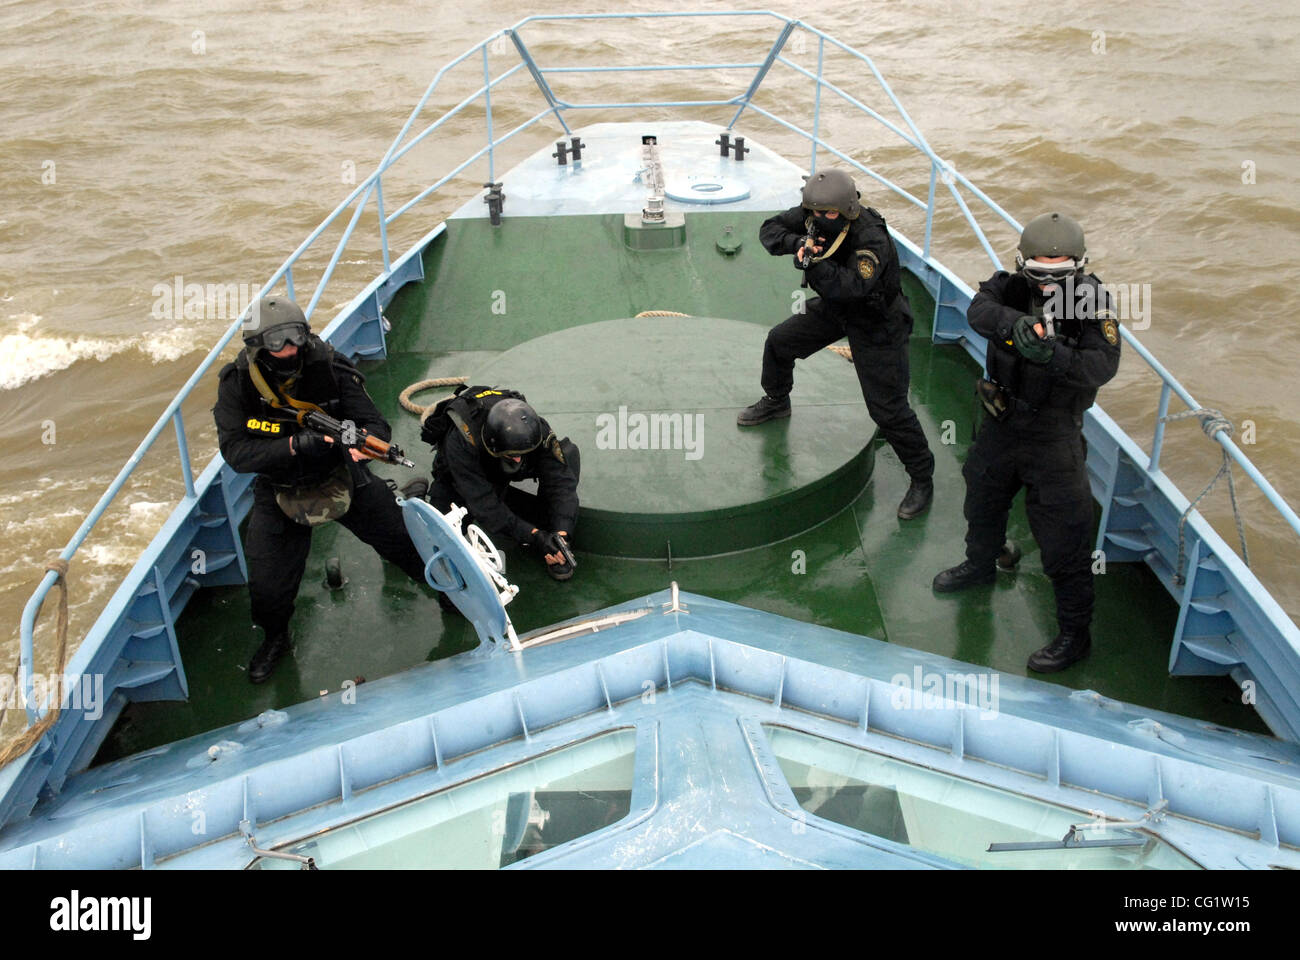 Combat training of russian coast guards and special FSB - Federal Security Service (KGB)unit forces. On the picture - Stock Image